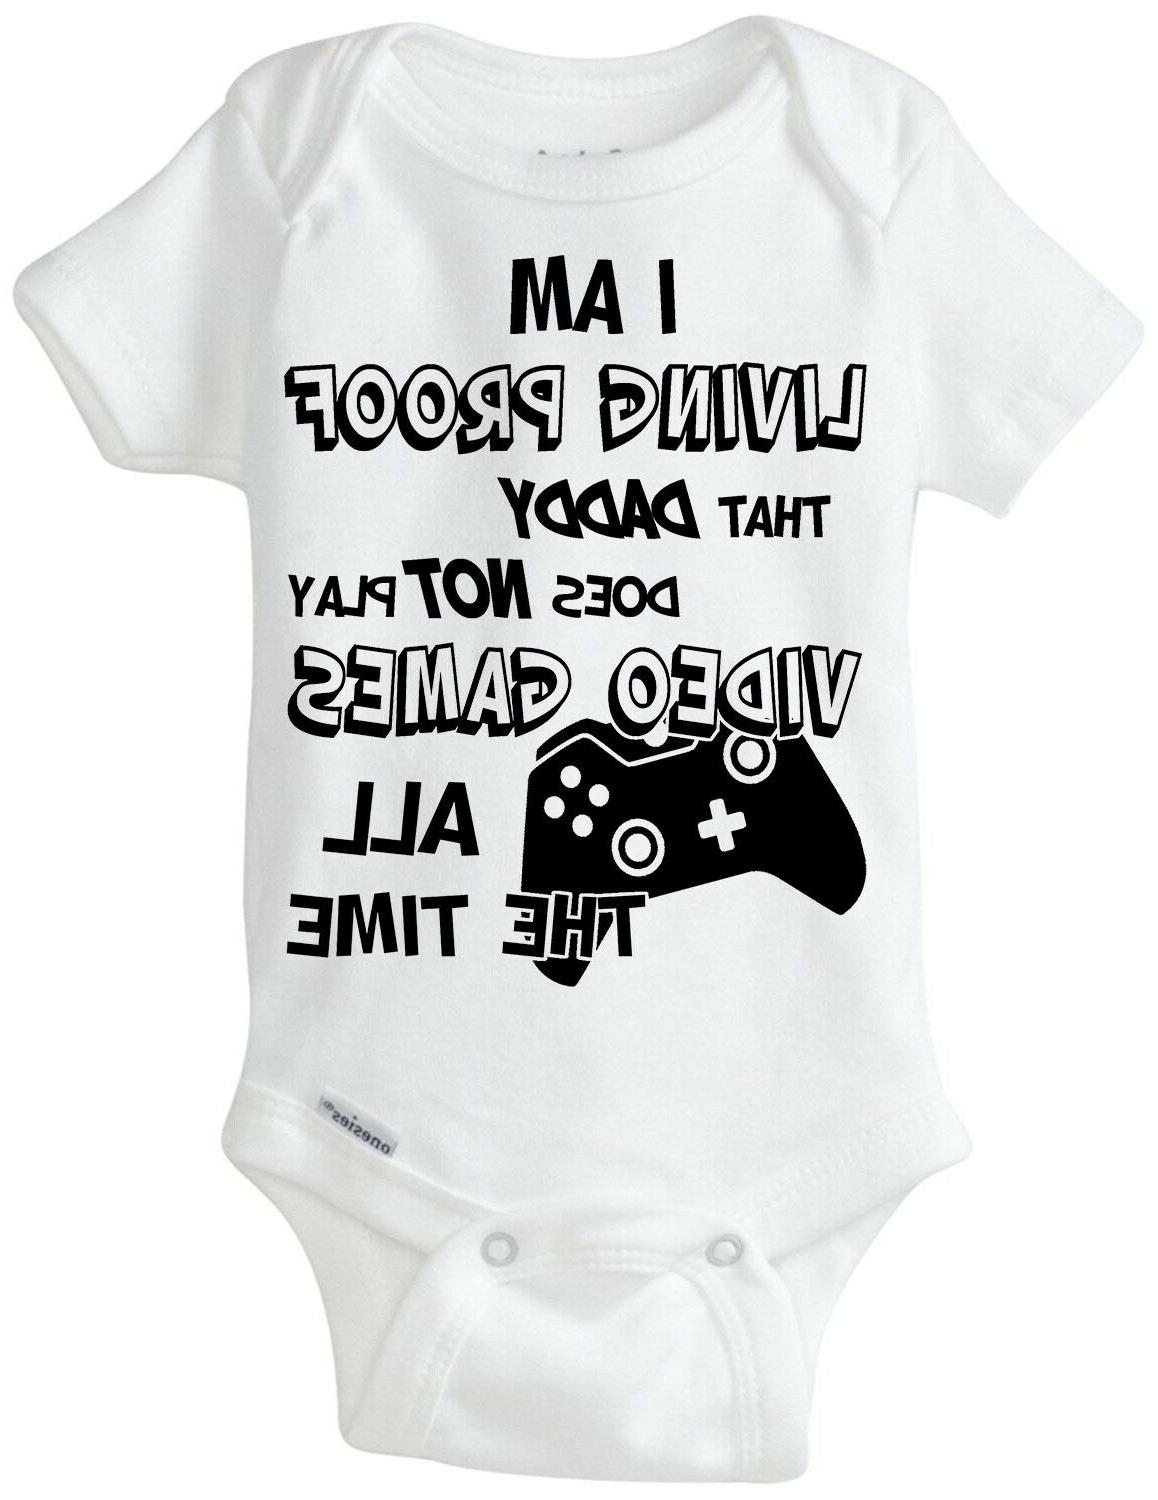 I'm Proof Daddy Play Video The Baby Gerber Onesie